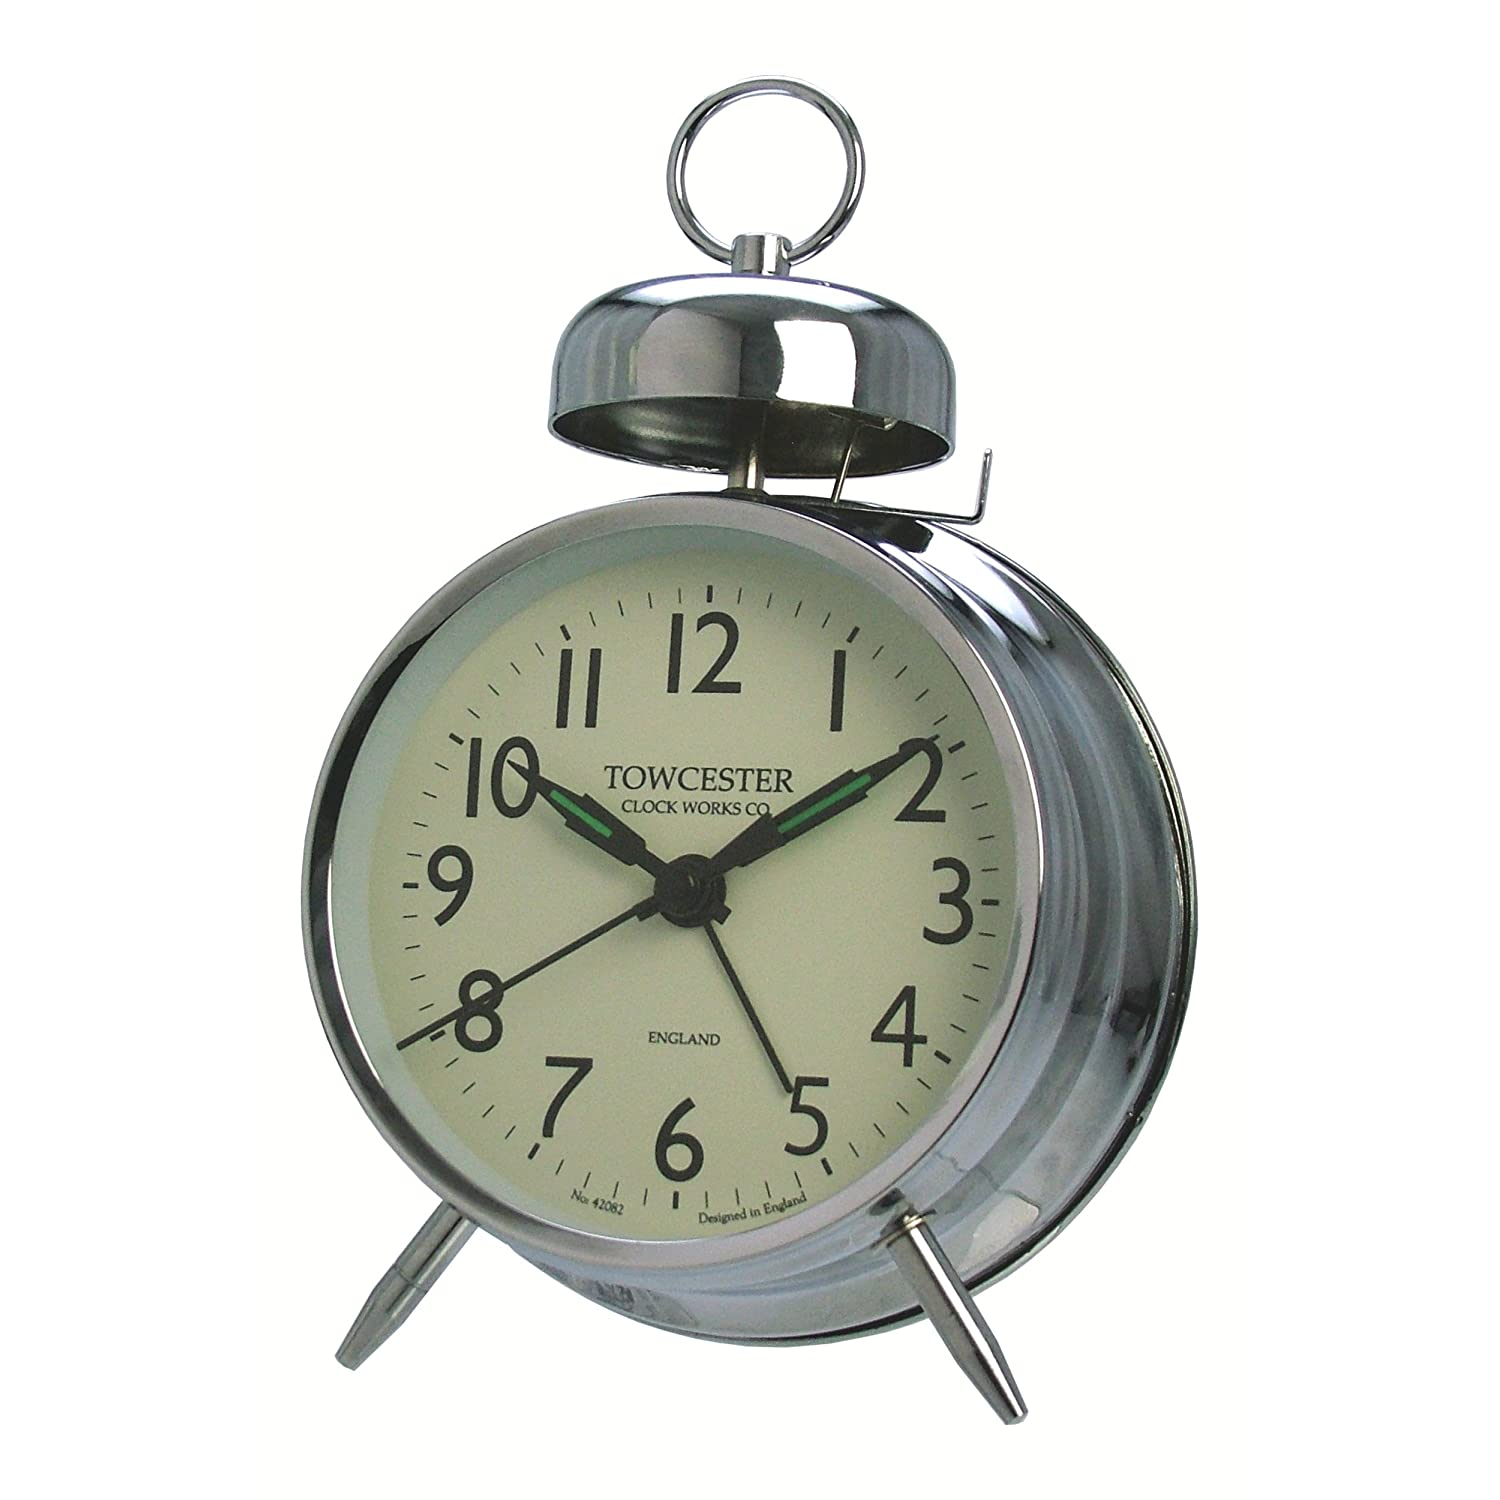 ... Pimlico Mechanical wind up movement, Single bell alarm Clock, Silver